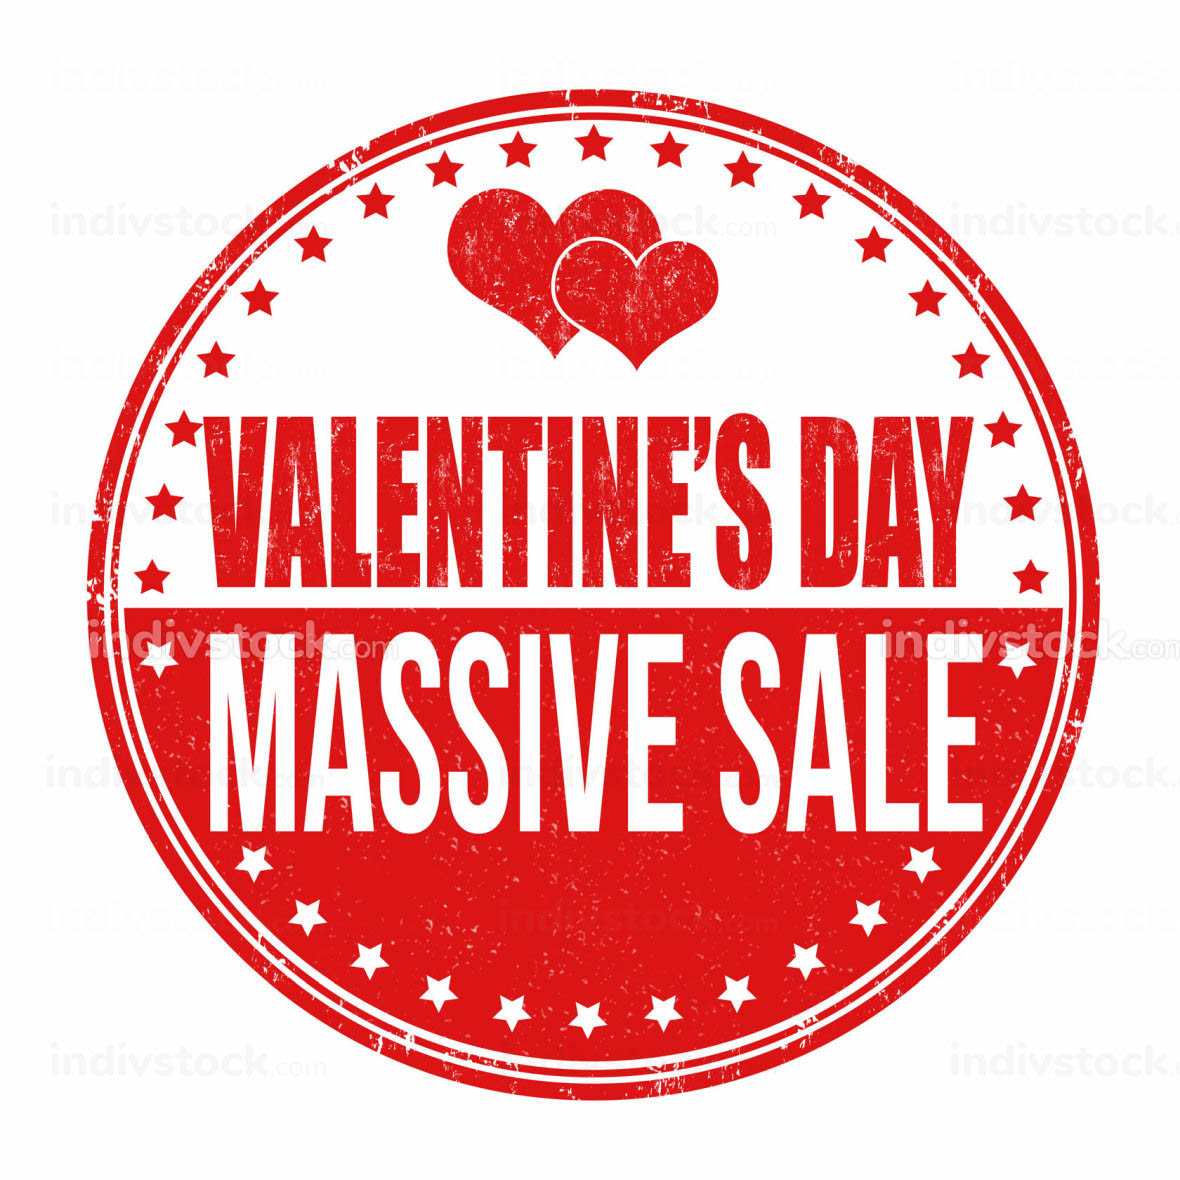 Valentines Day massive sale stamp